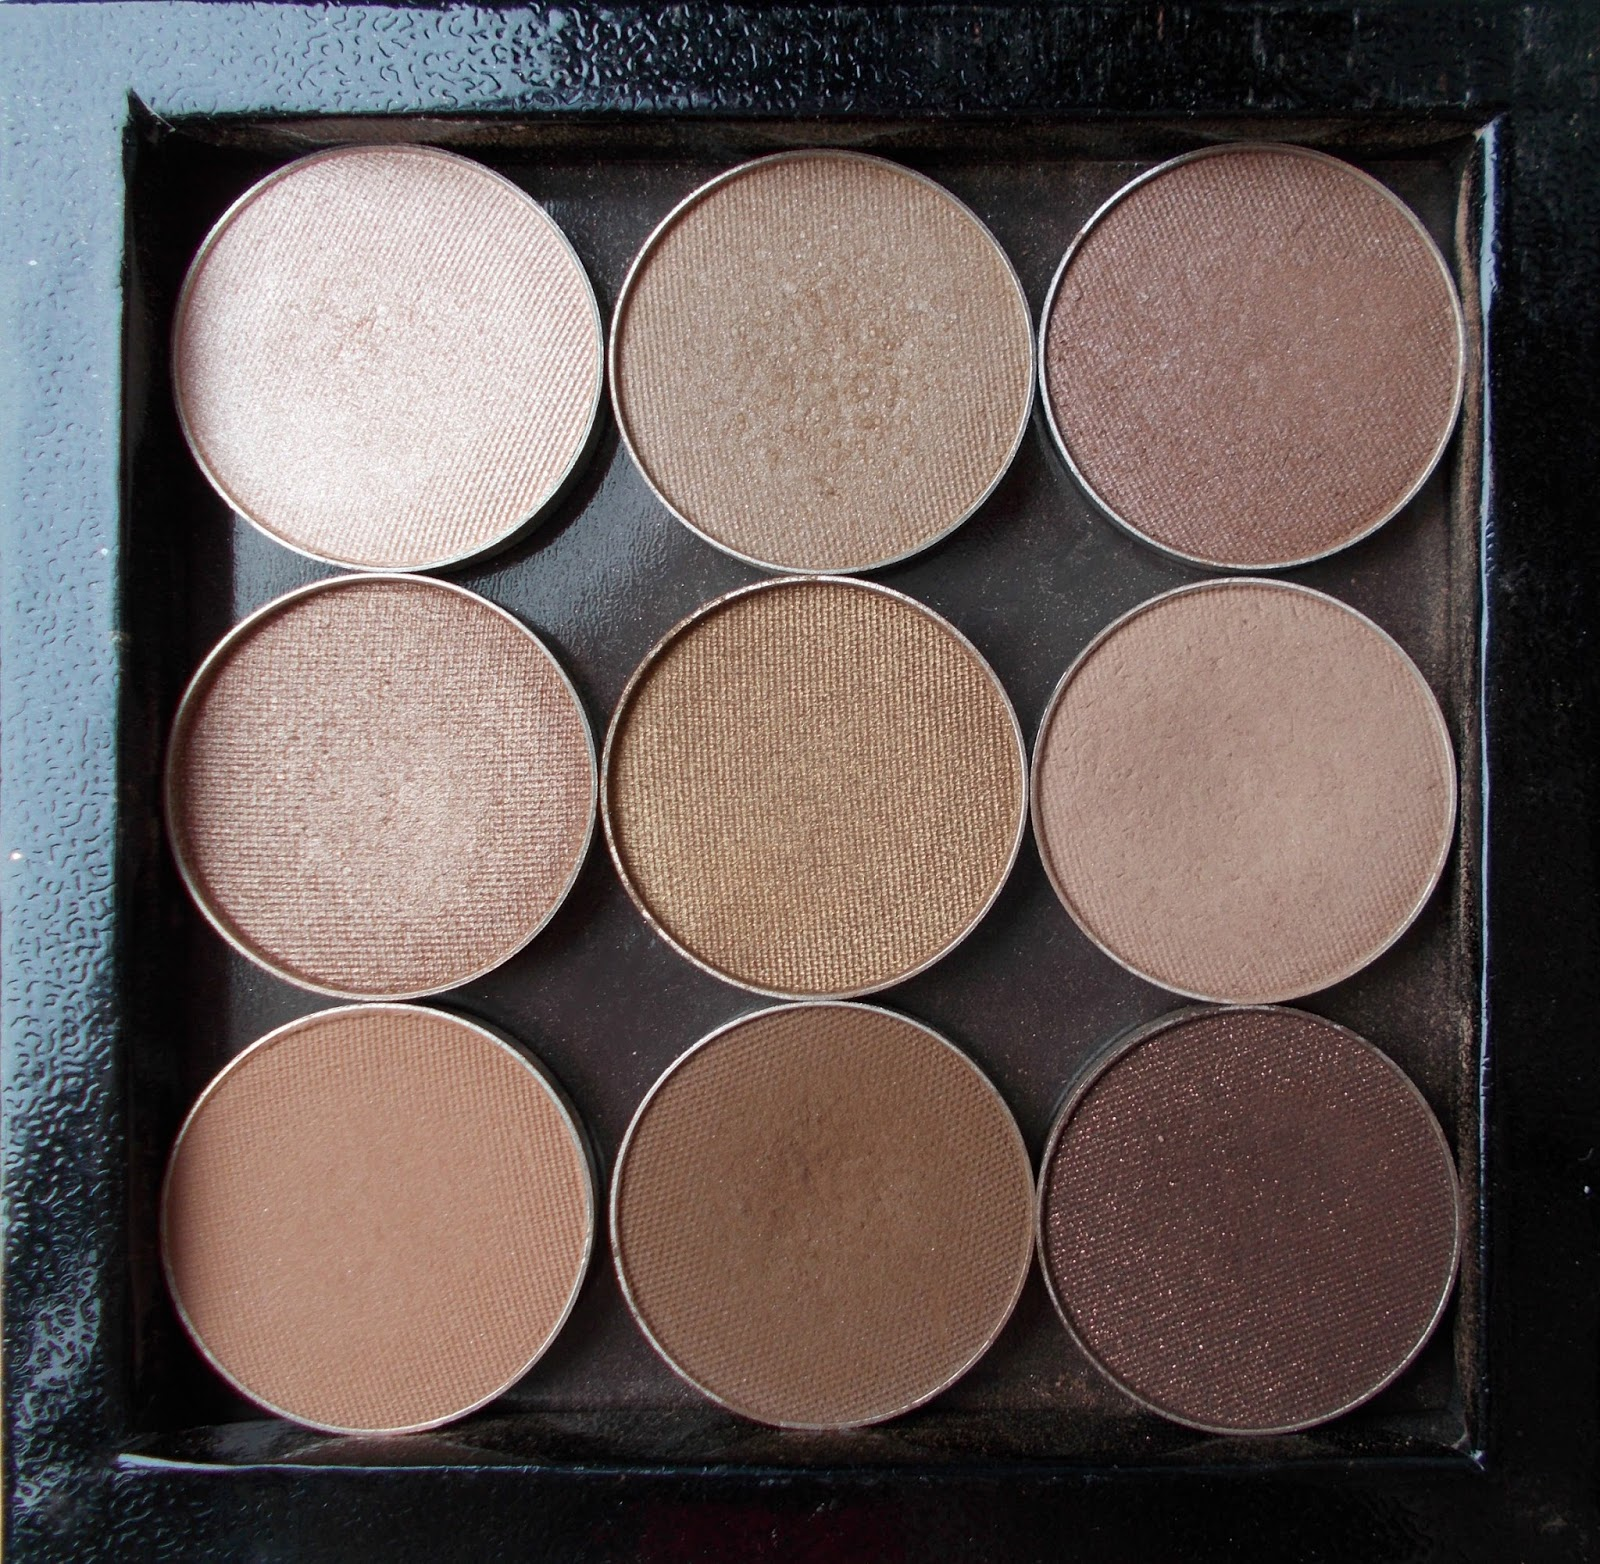 makeup geek neutral z palette brown shades